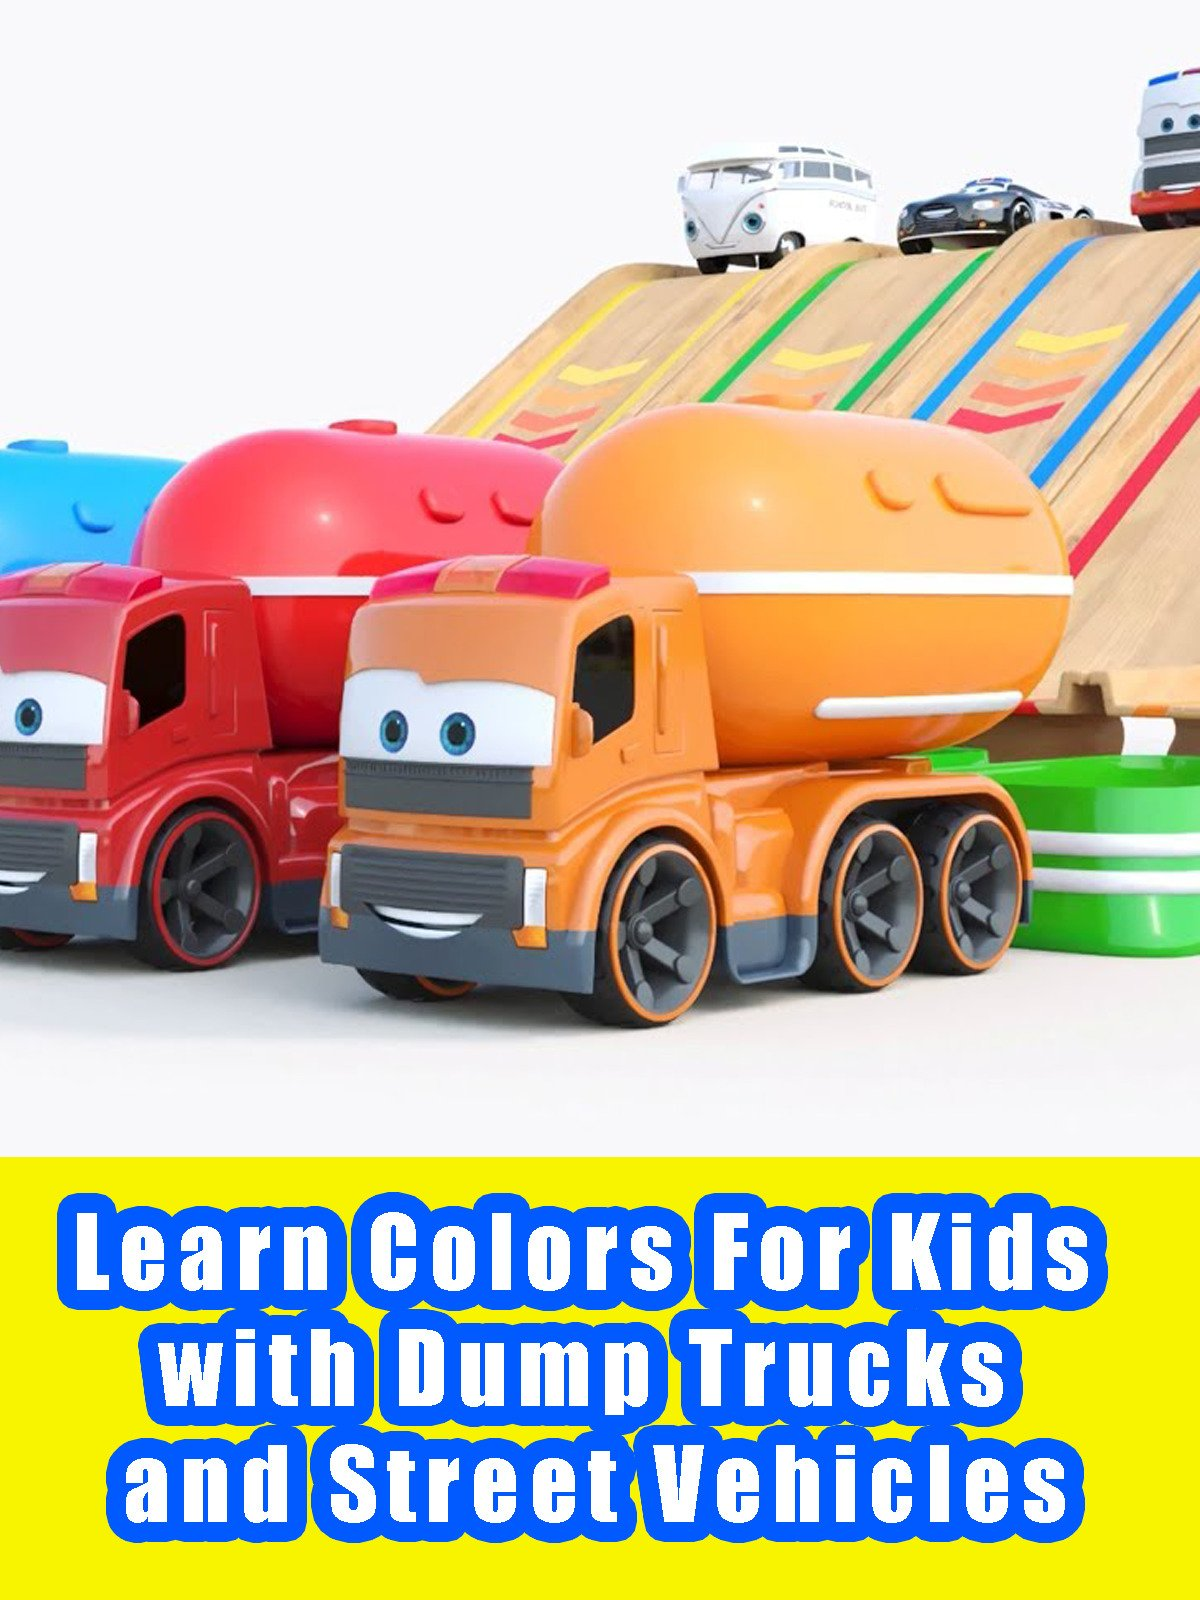 Learn Colors For Kids with Dump Trucks and Street Vehicles